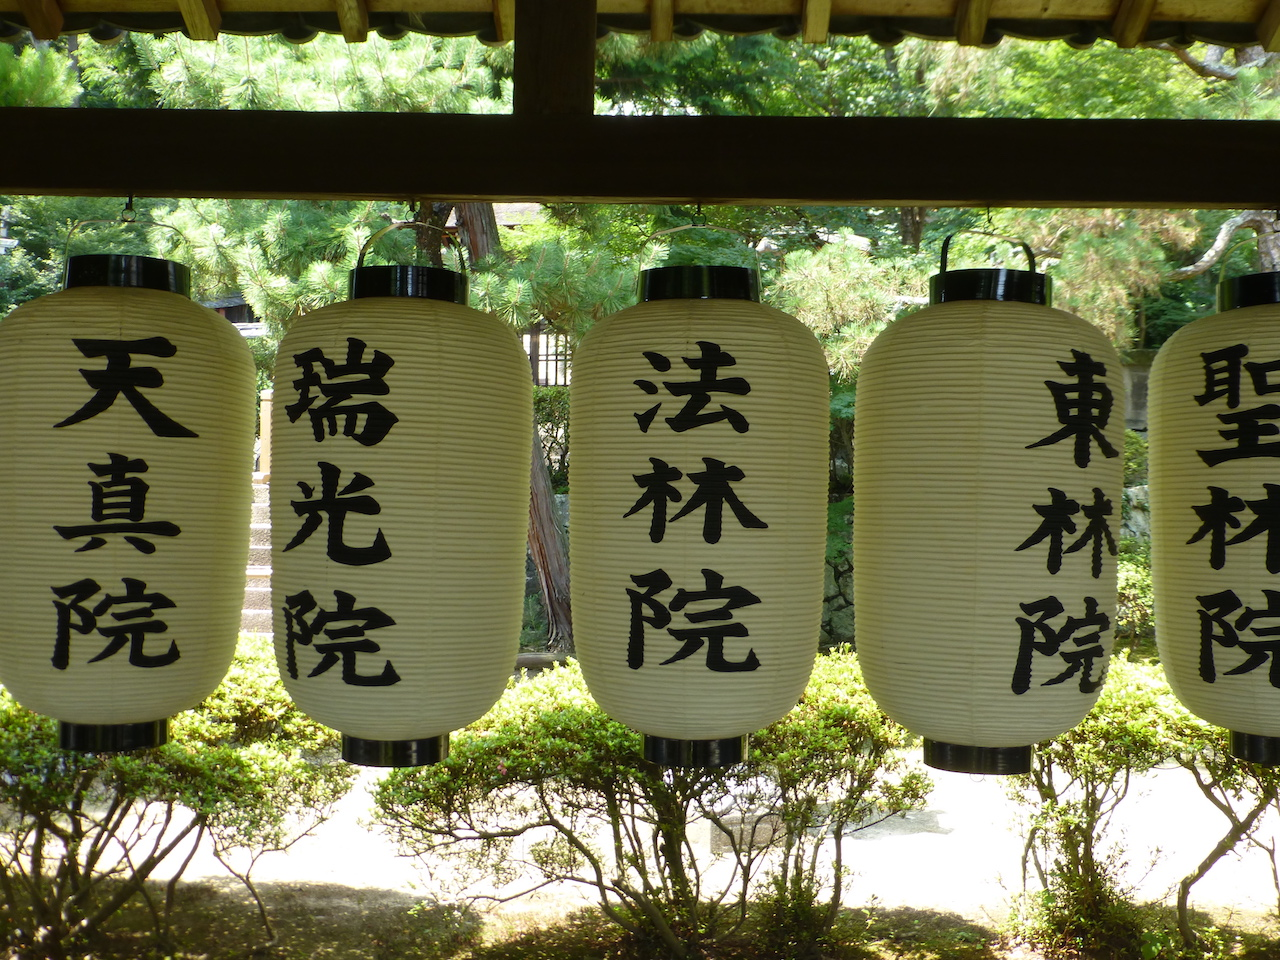 Lanterns in the Manpukuji, a Zen temple in Obaku near Kyoto